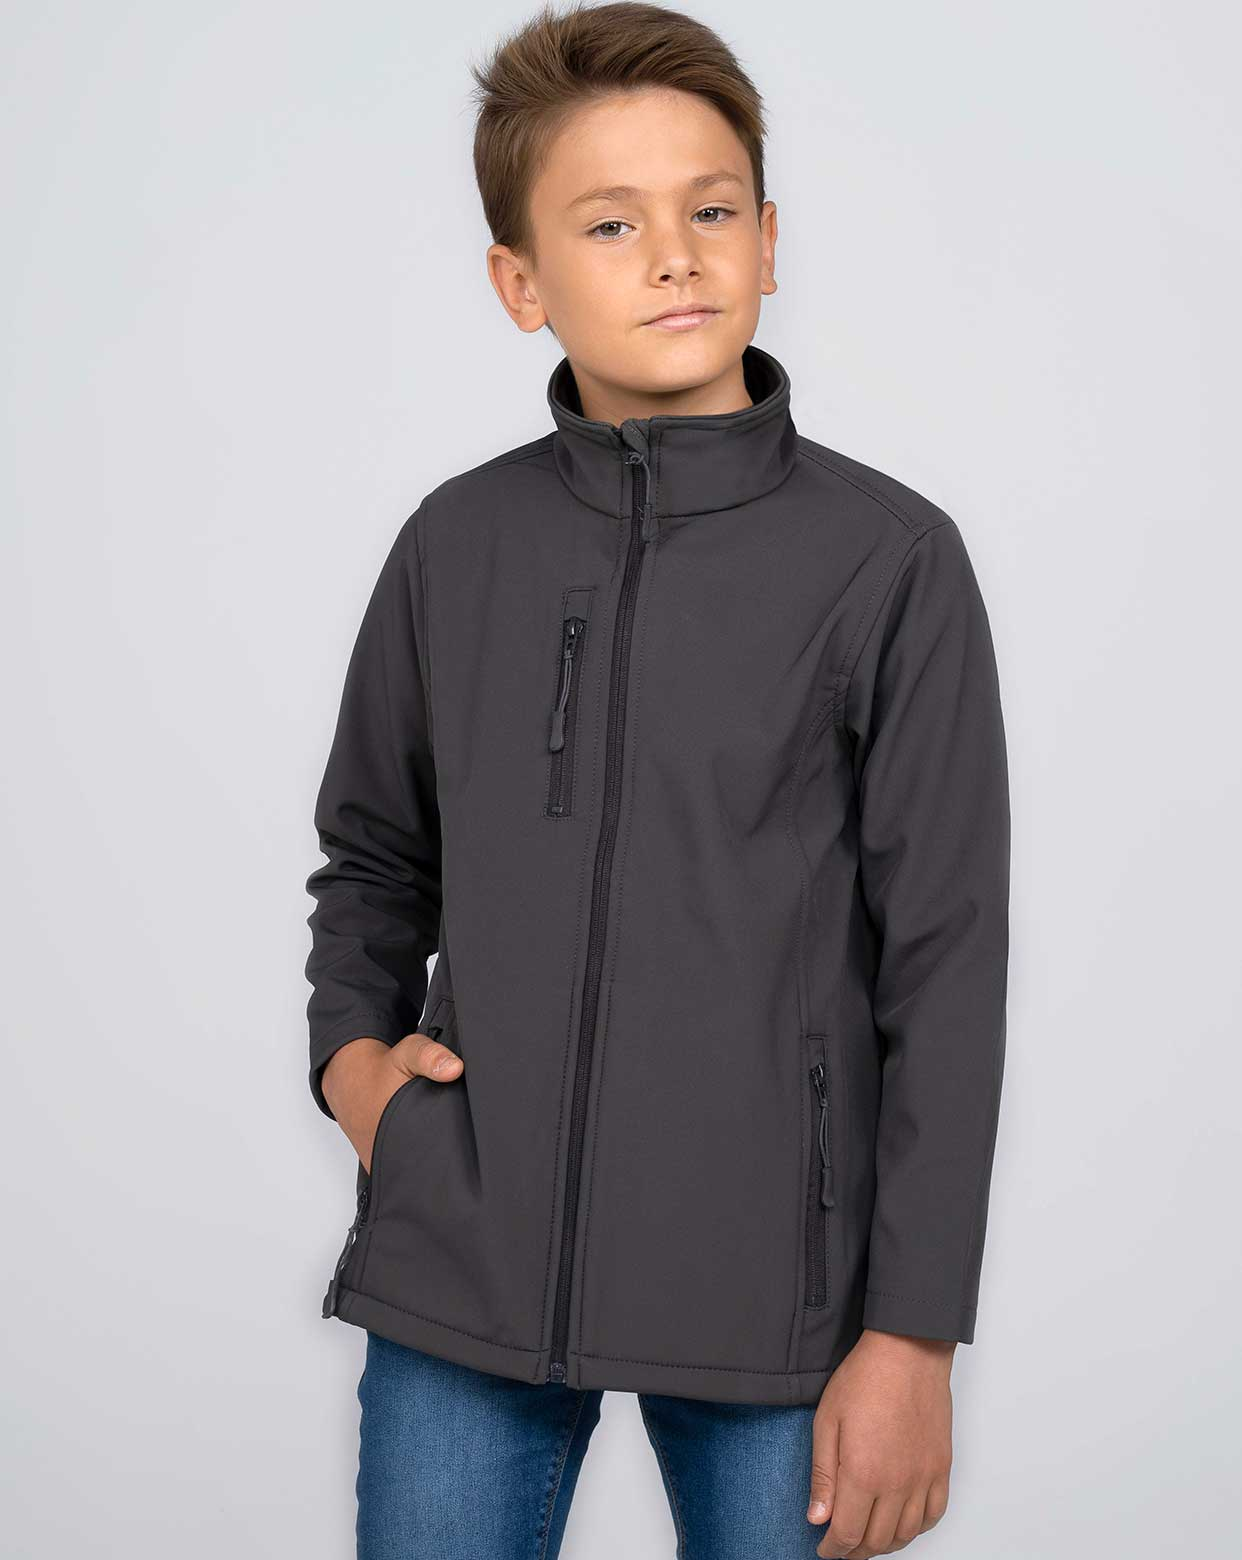 Kid Softshell Jacket - SOFTJACKID